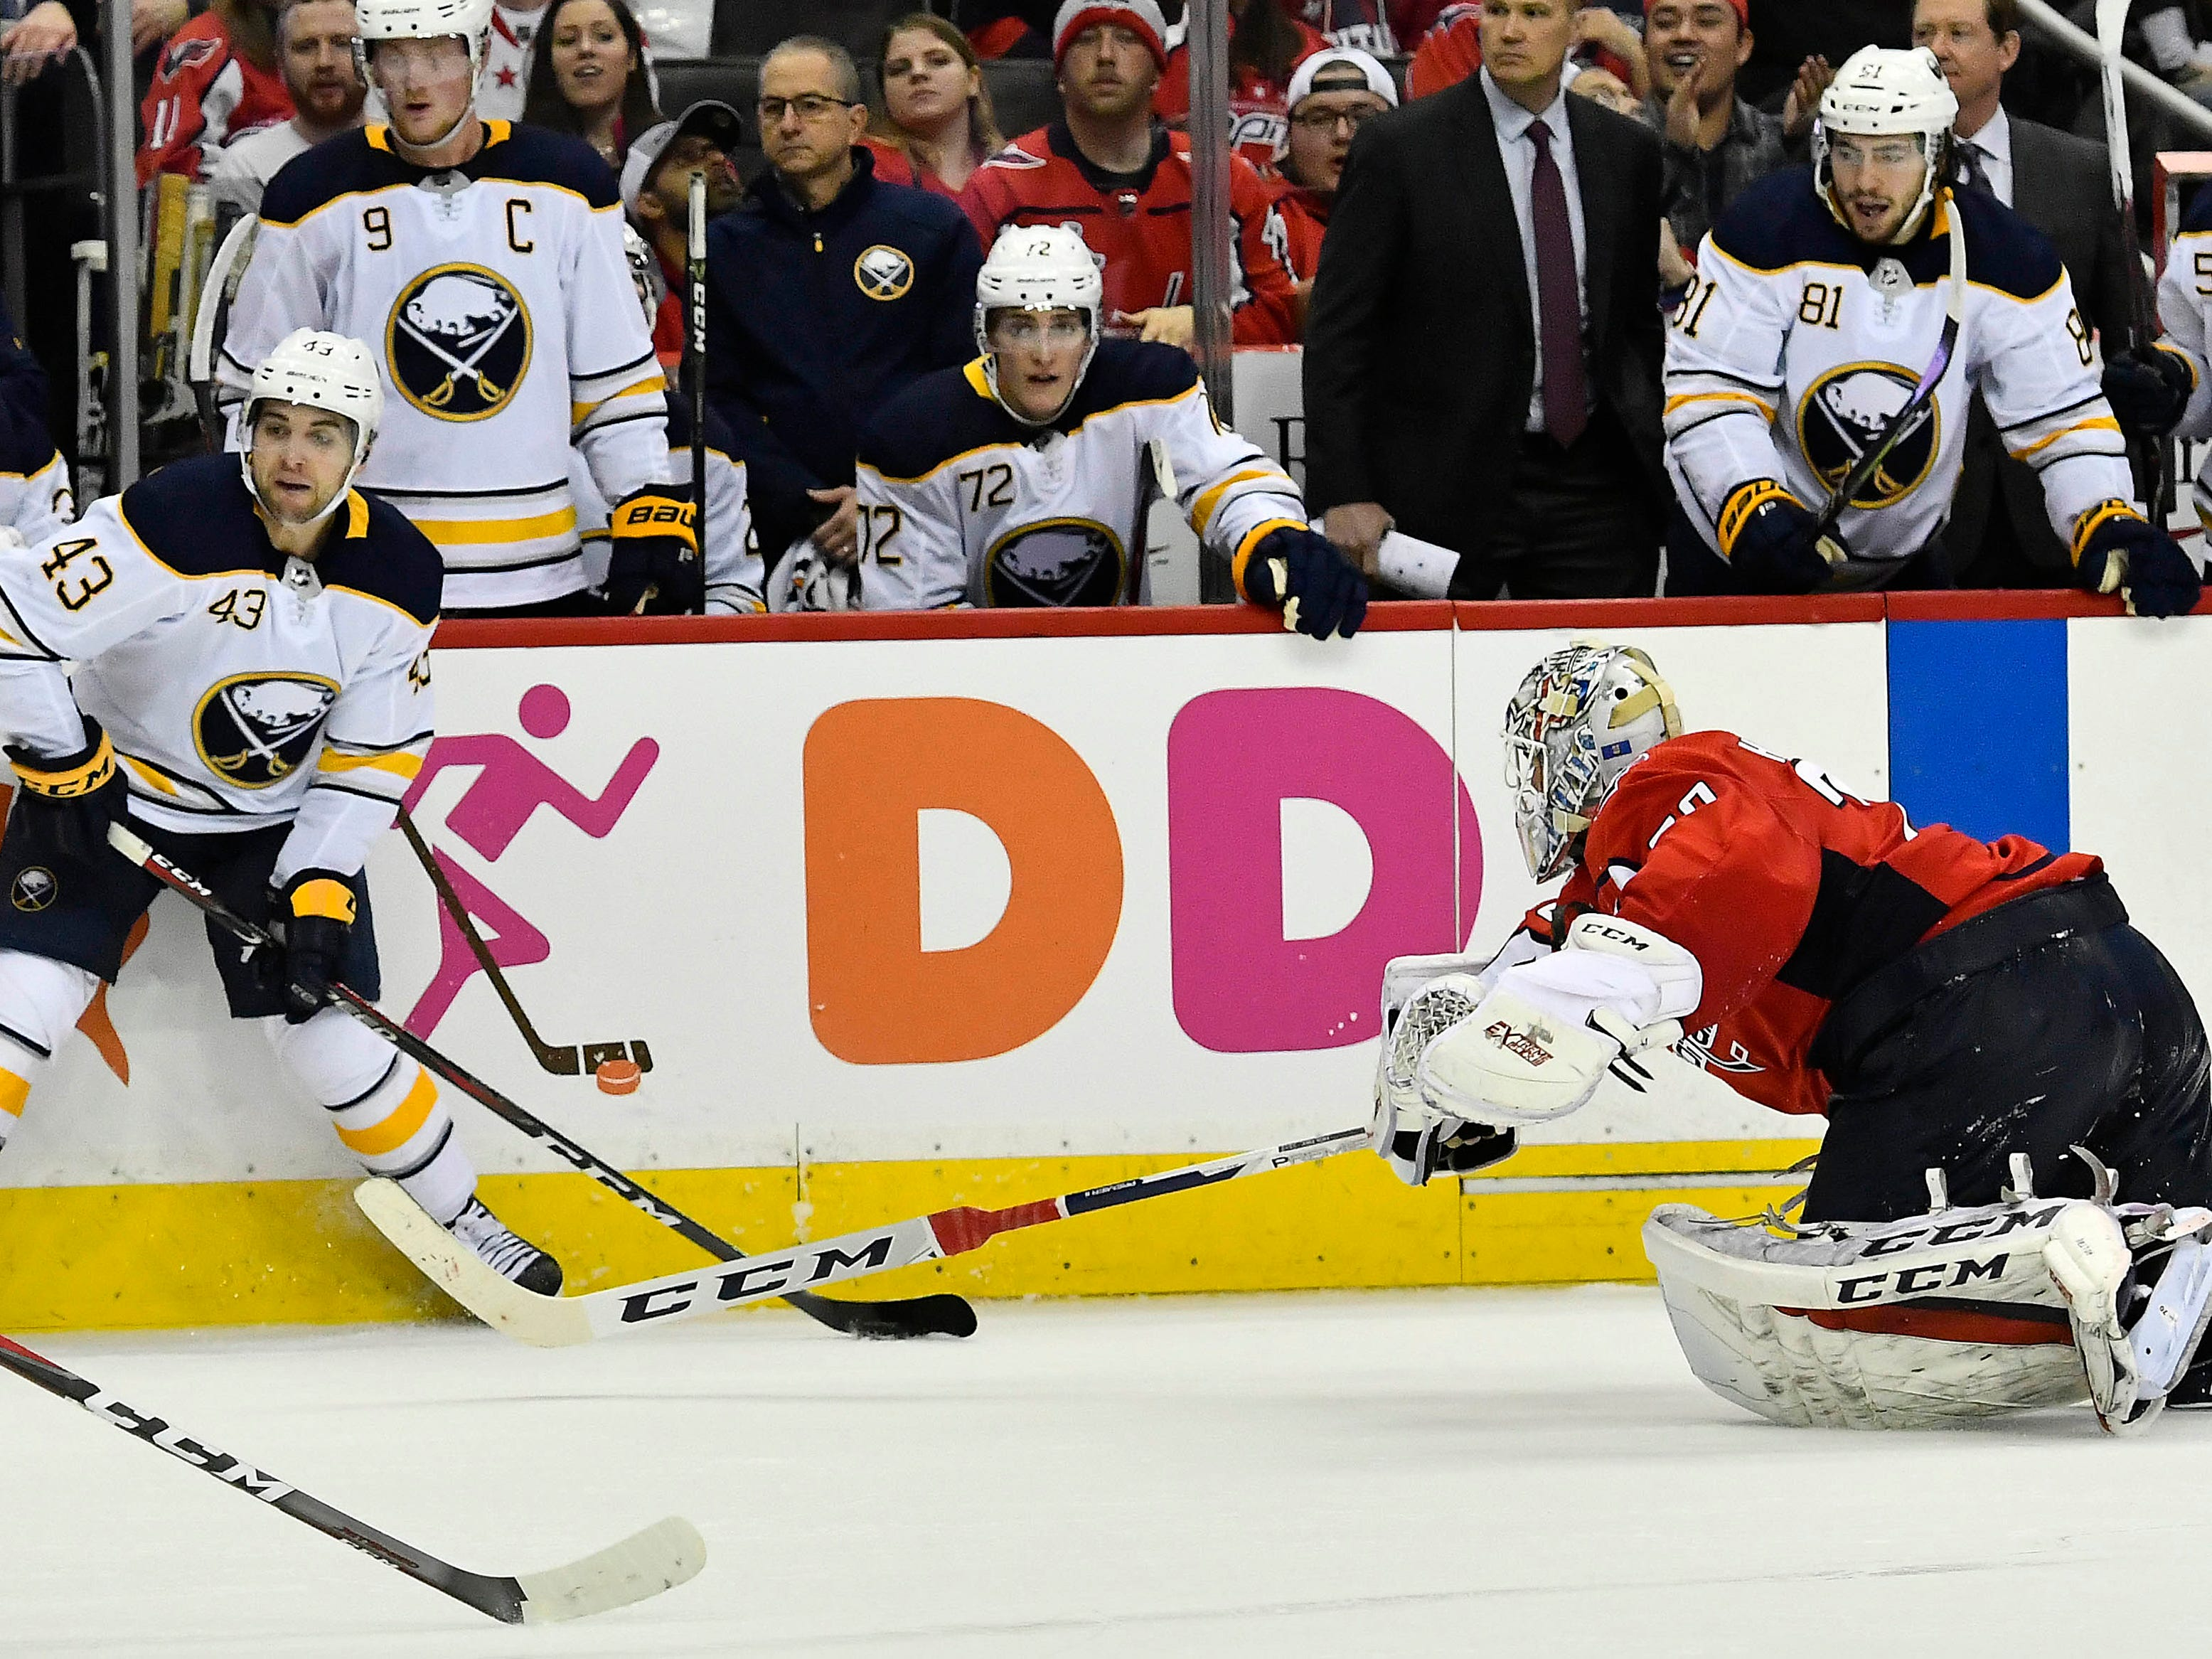 Dec. 21: Washington Capitals goaltender Braden Holtby, way out of his crease, makes a save against Buffalo Sabres left wing Conor Sheary near the blue line.